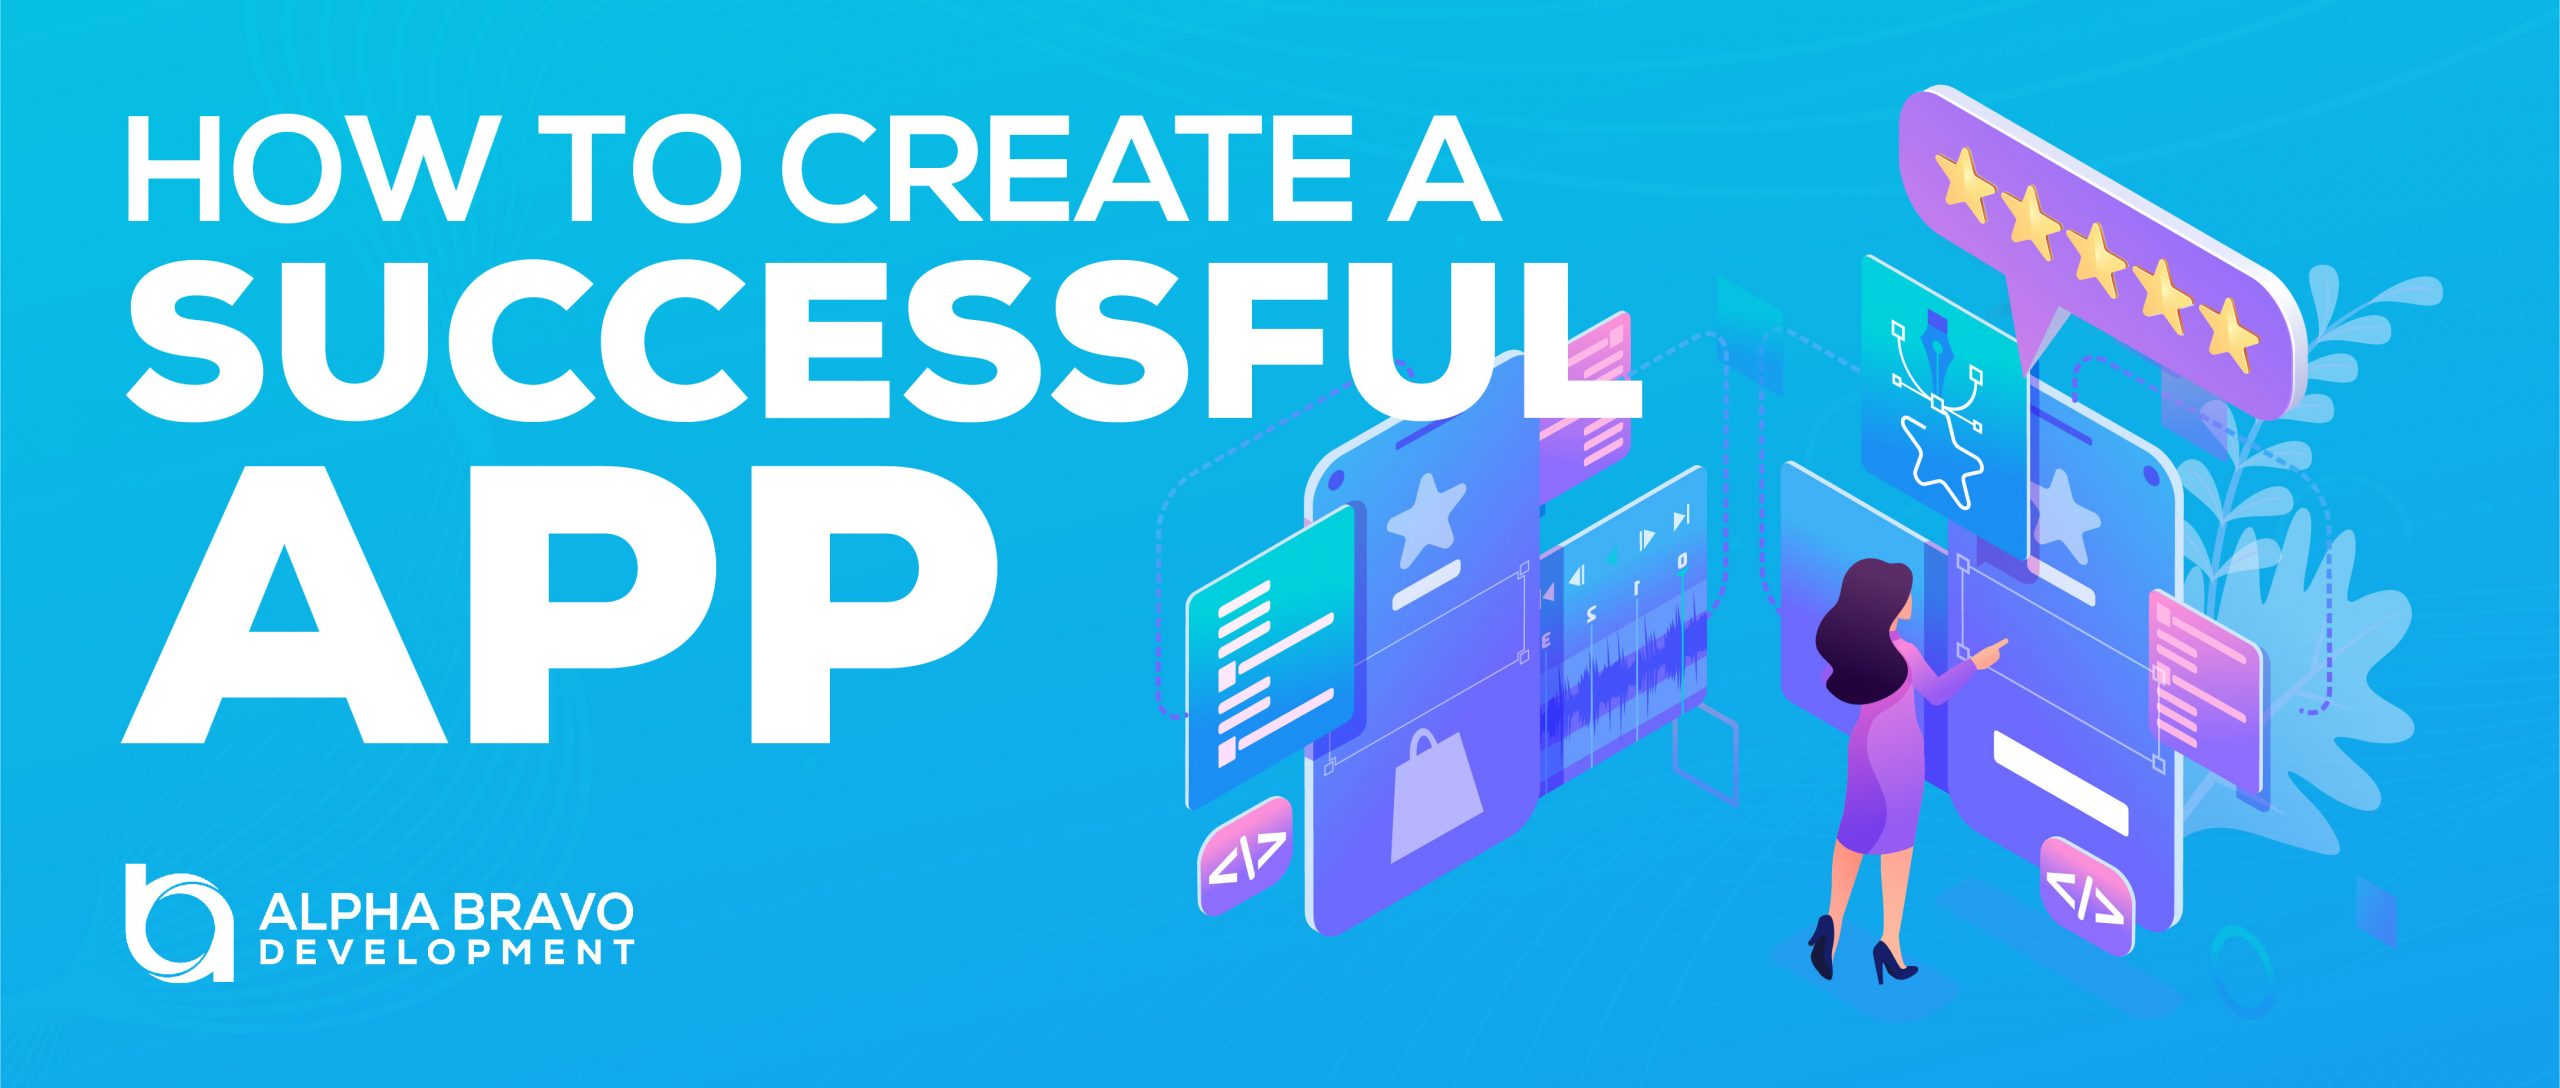 Create a blog cover image for a post titled _How To Create a Successful App__RRS_20-jan-2021_V1-02